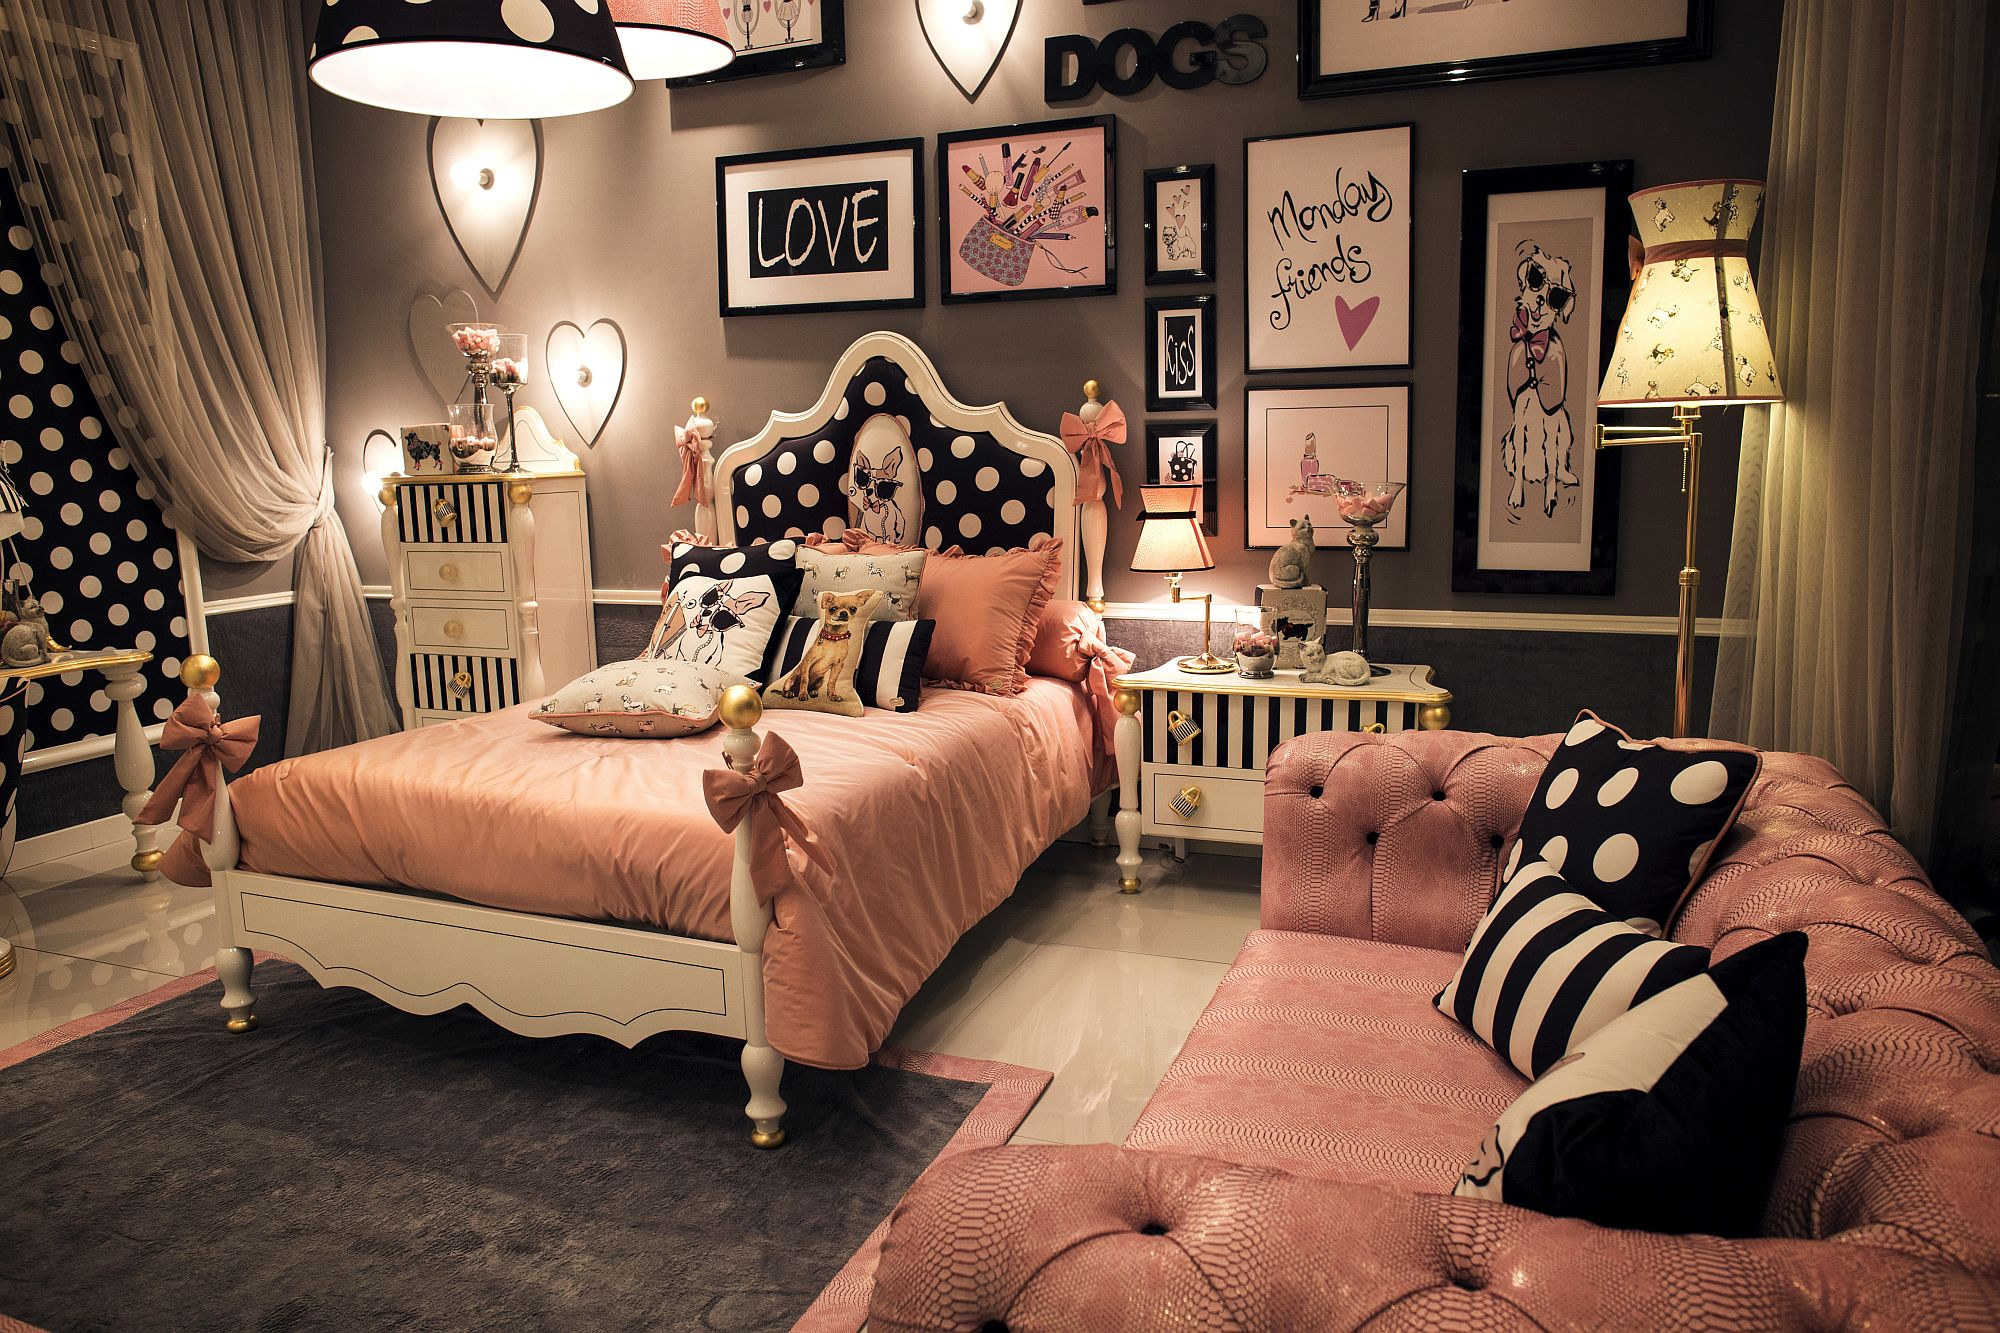 50 Latest Kids' Bedroom Decorating and Furniture Ideas